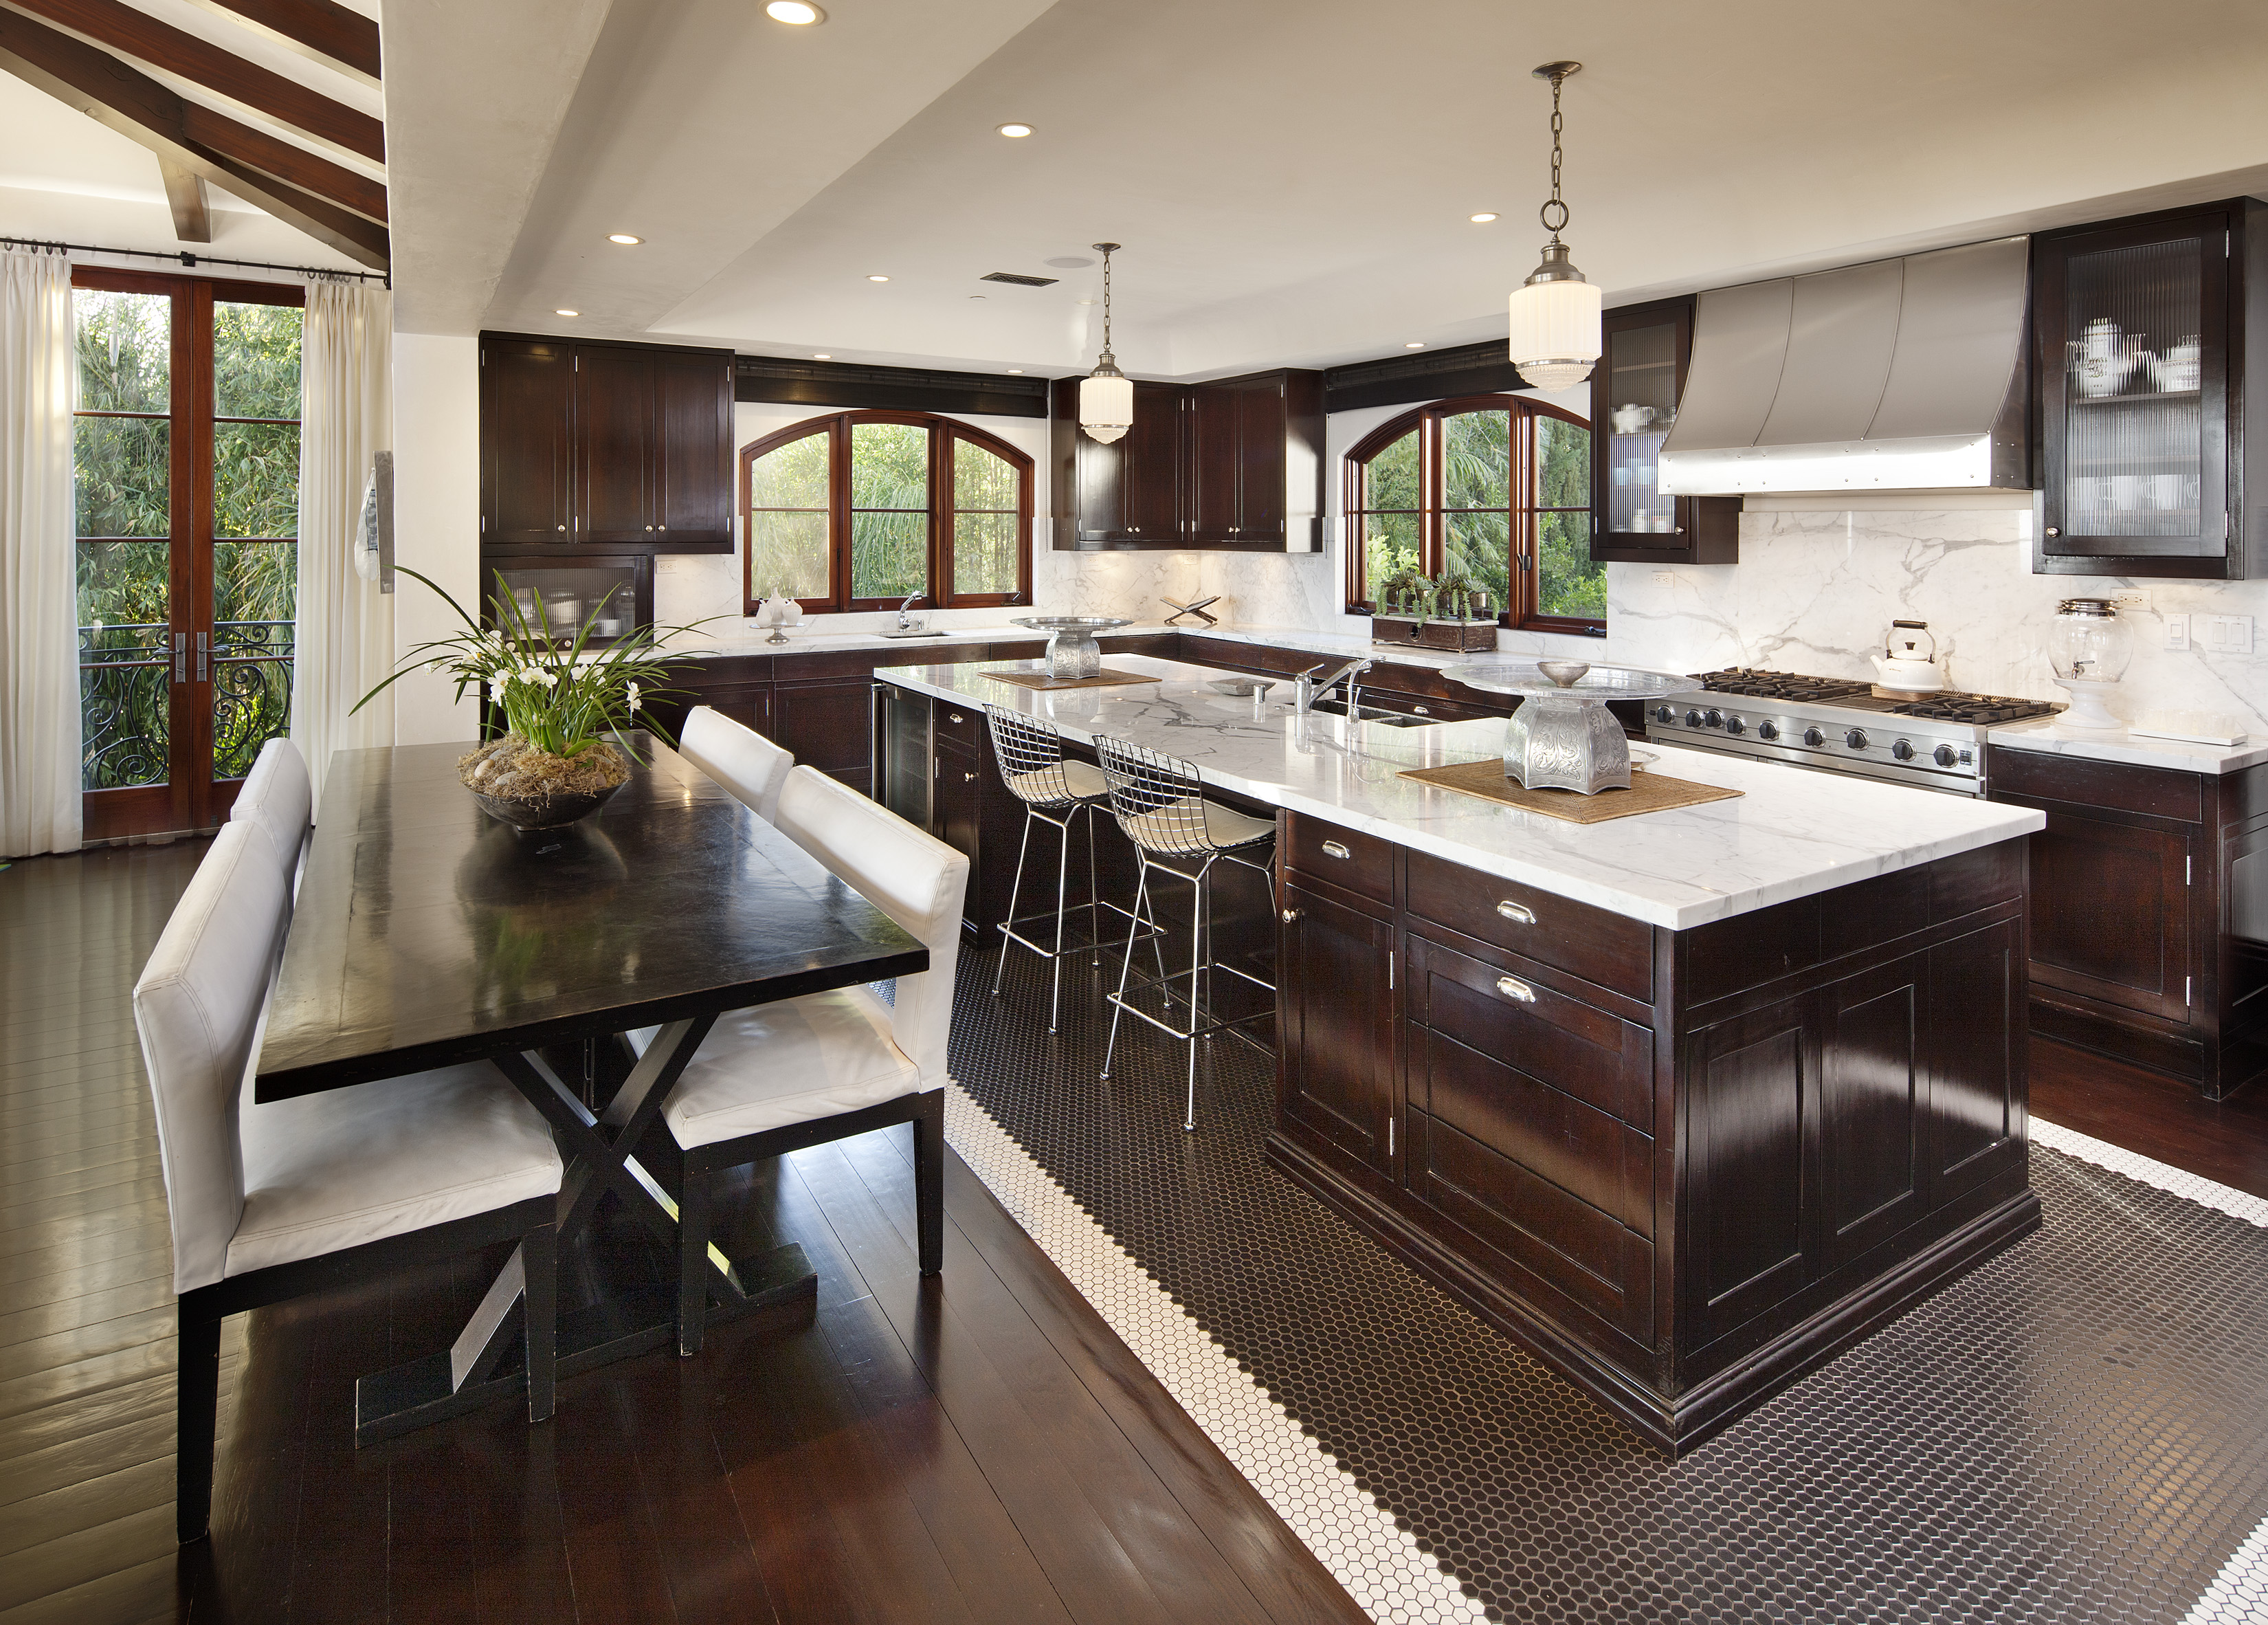 Country style kitchens tend to feel the most inviting and easy to ...